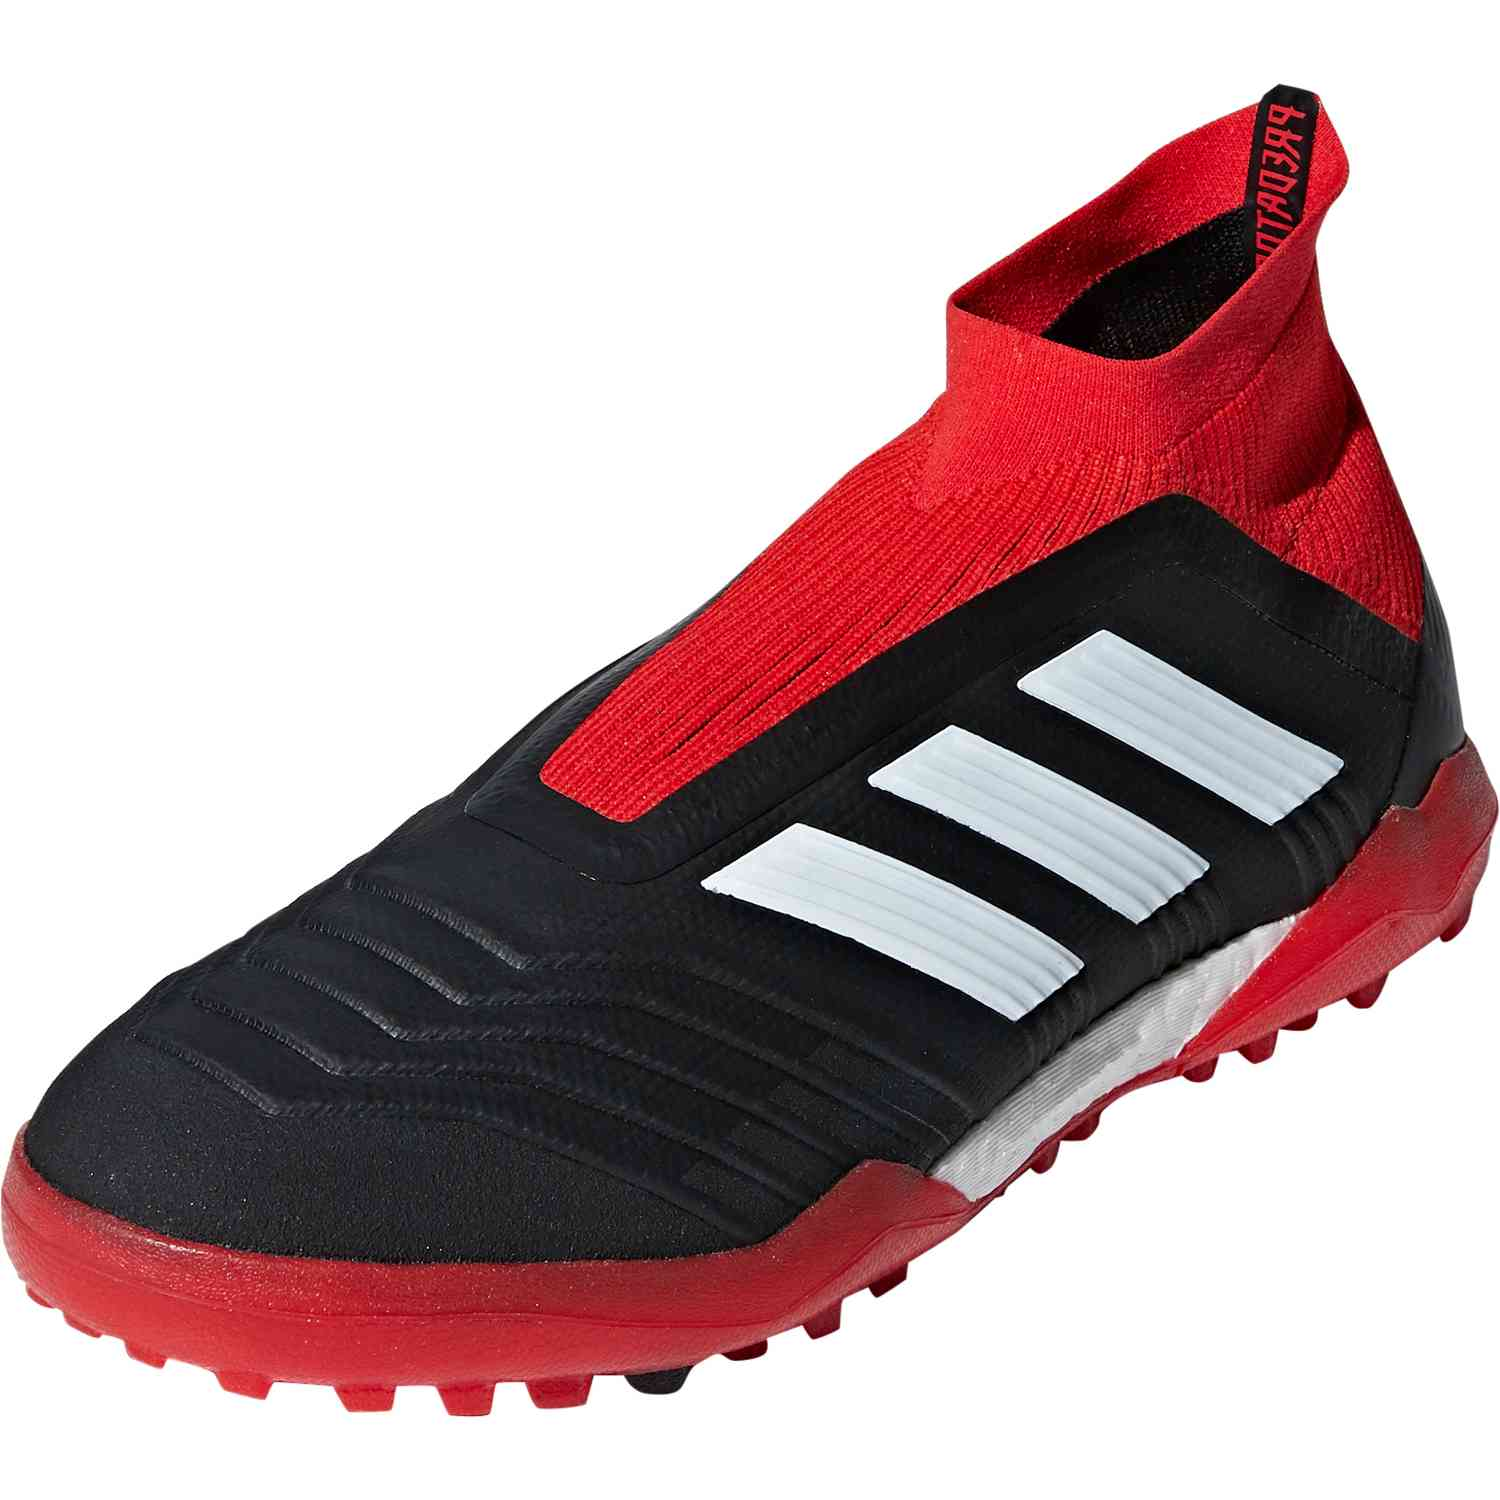 newest d3baf f1a59 adidas Predator Tango 18+ TF – Team Mode